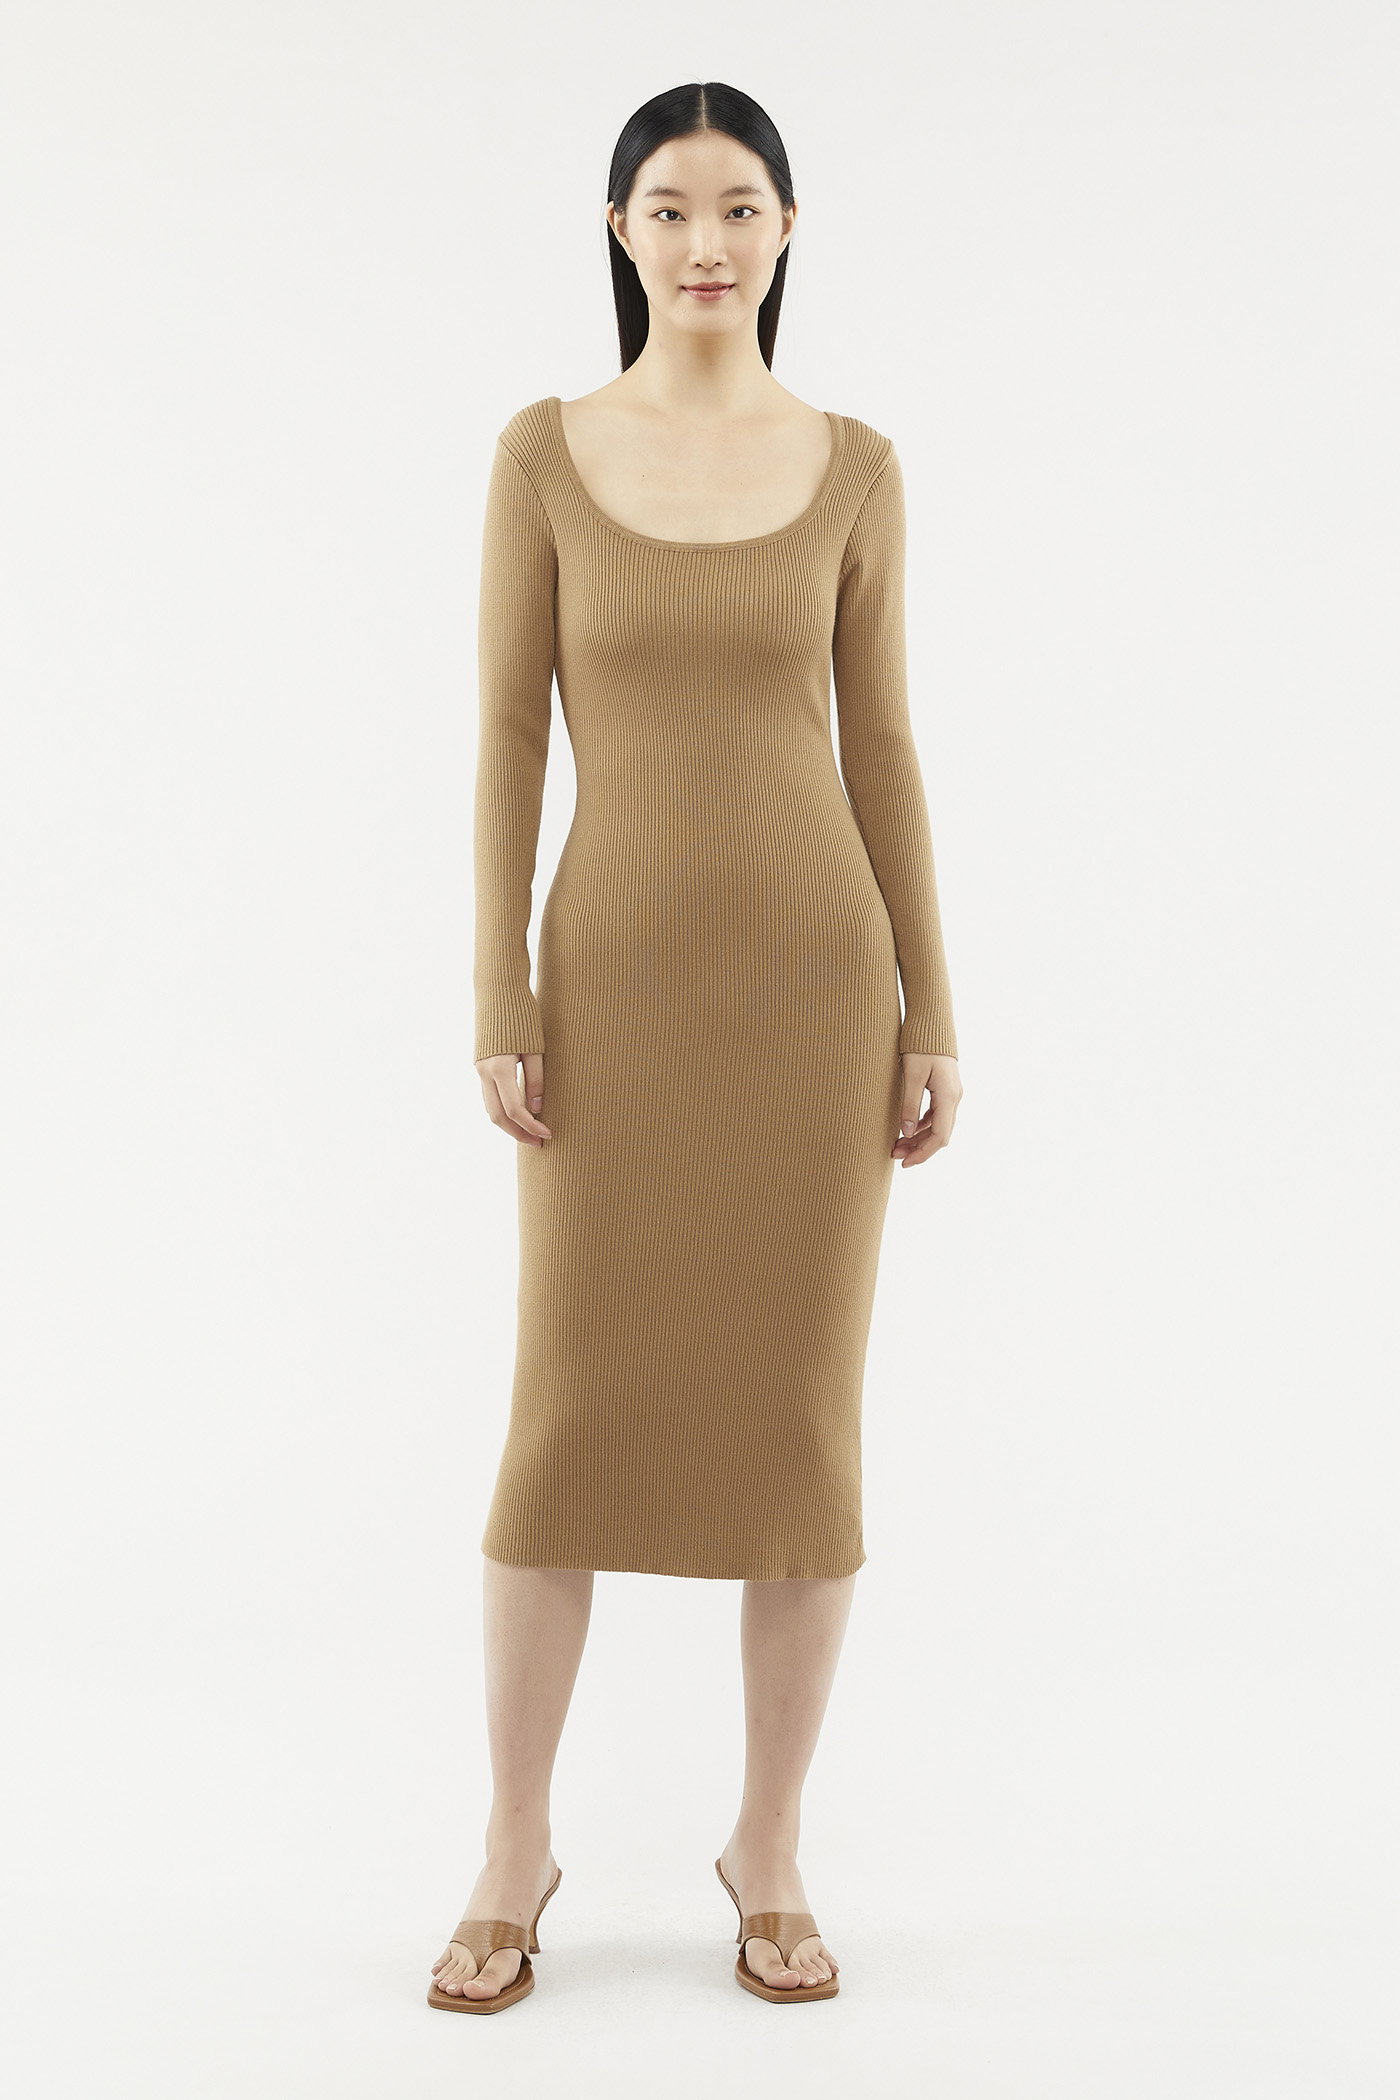 Erlynna Long-sleeve Knit Dress